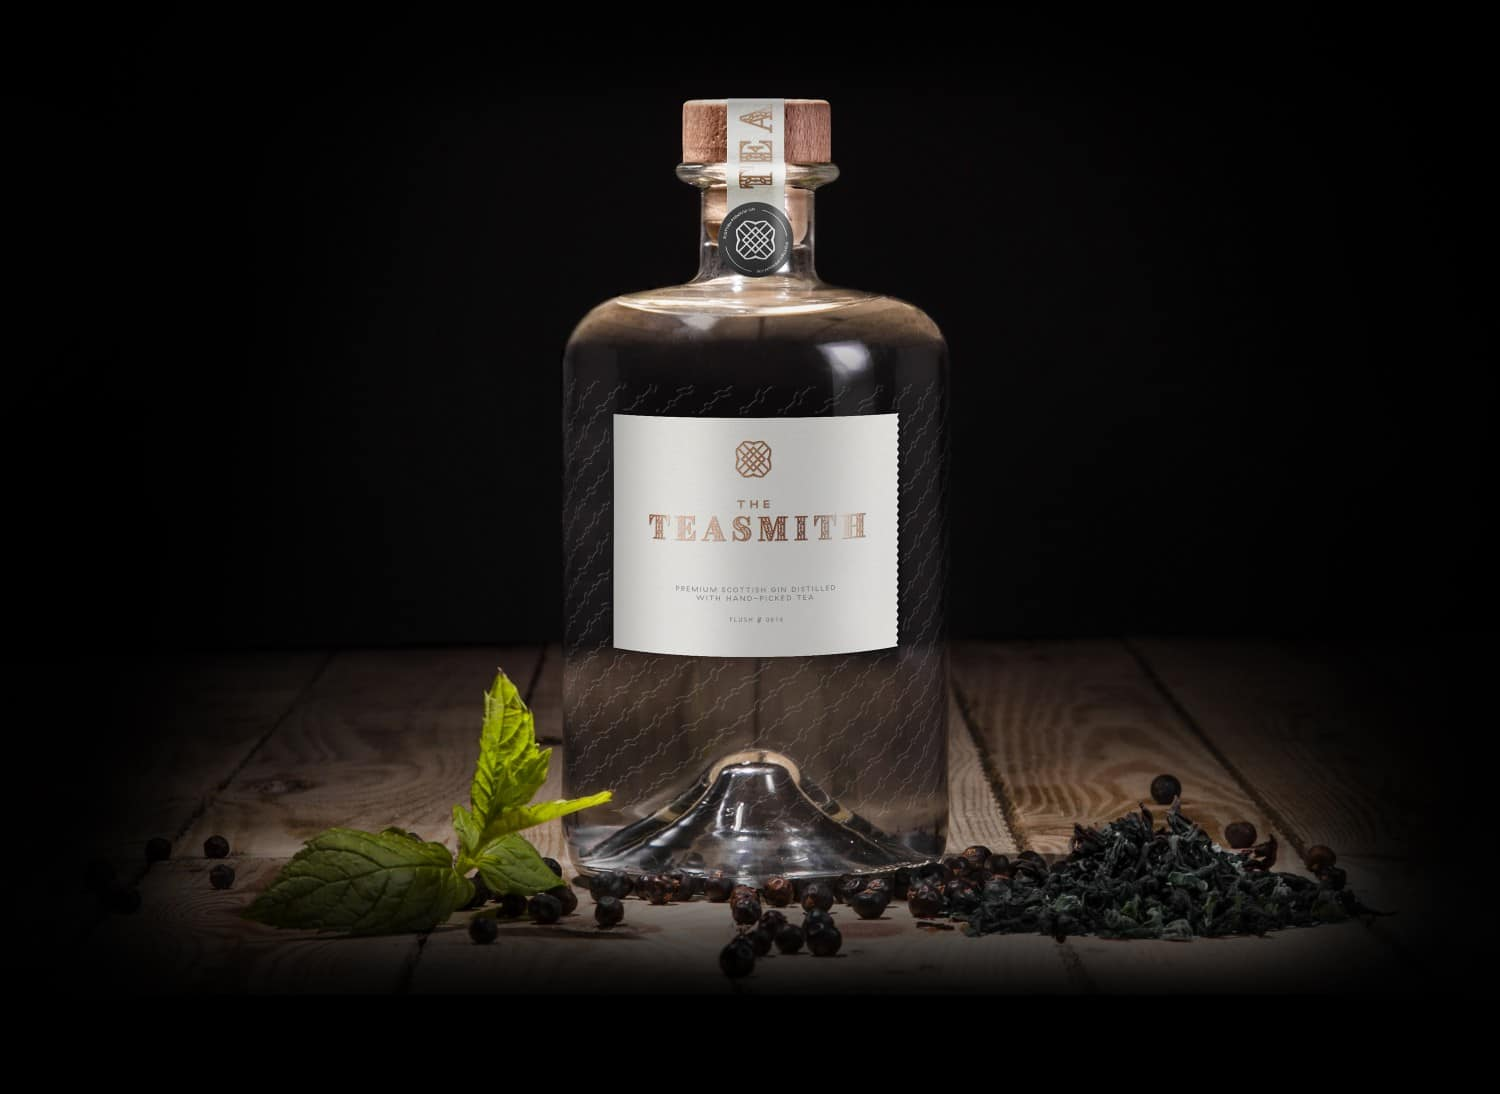 The Teasmith Gin bottle